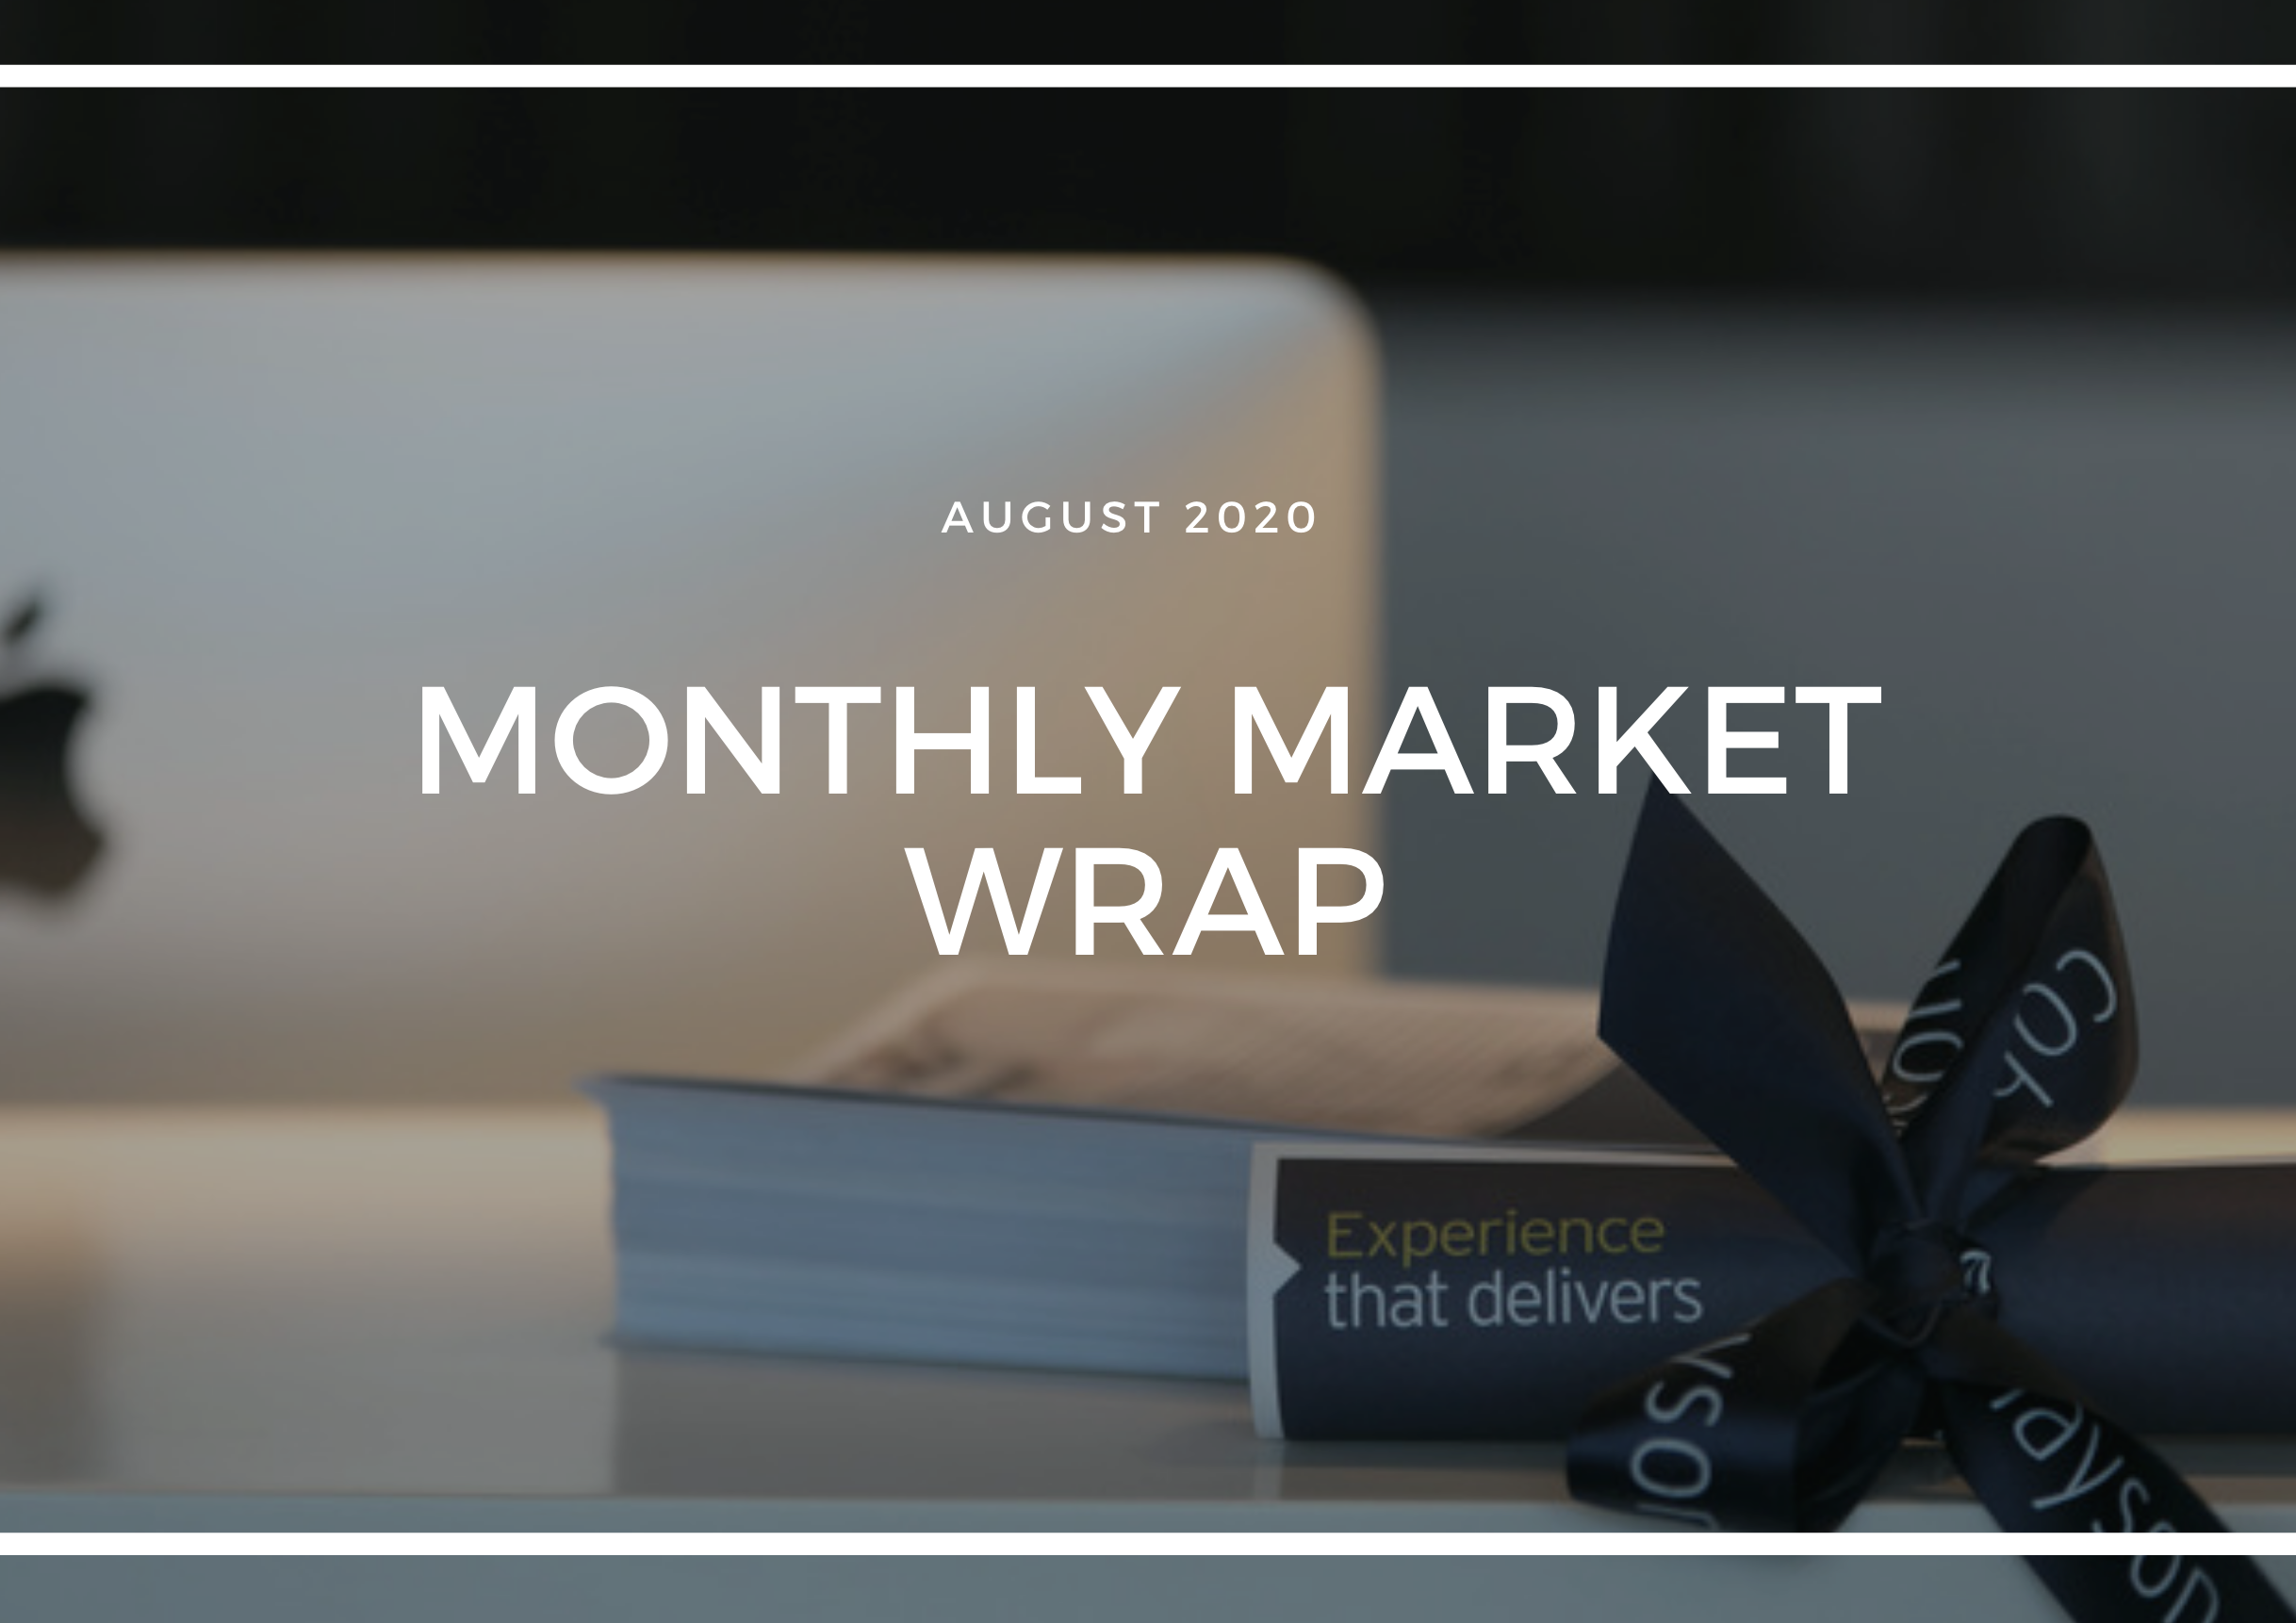 MONTHLY MARKET WRAP - AUGUST 2020